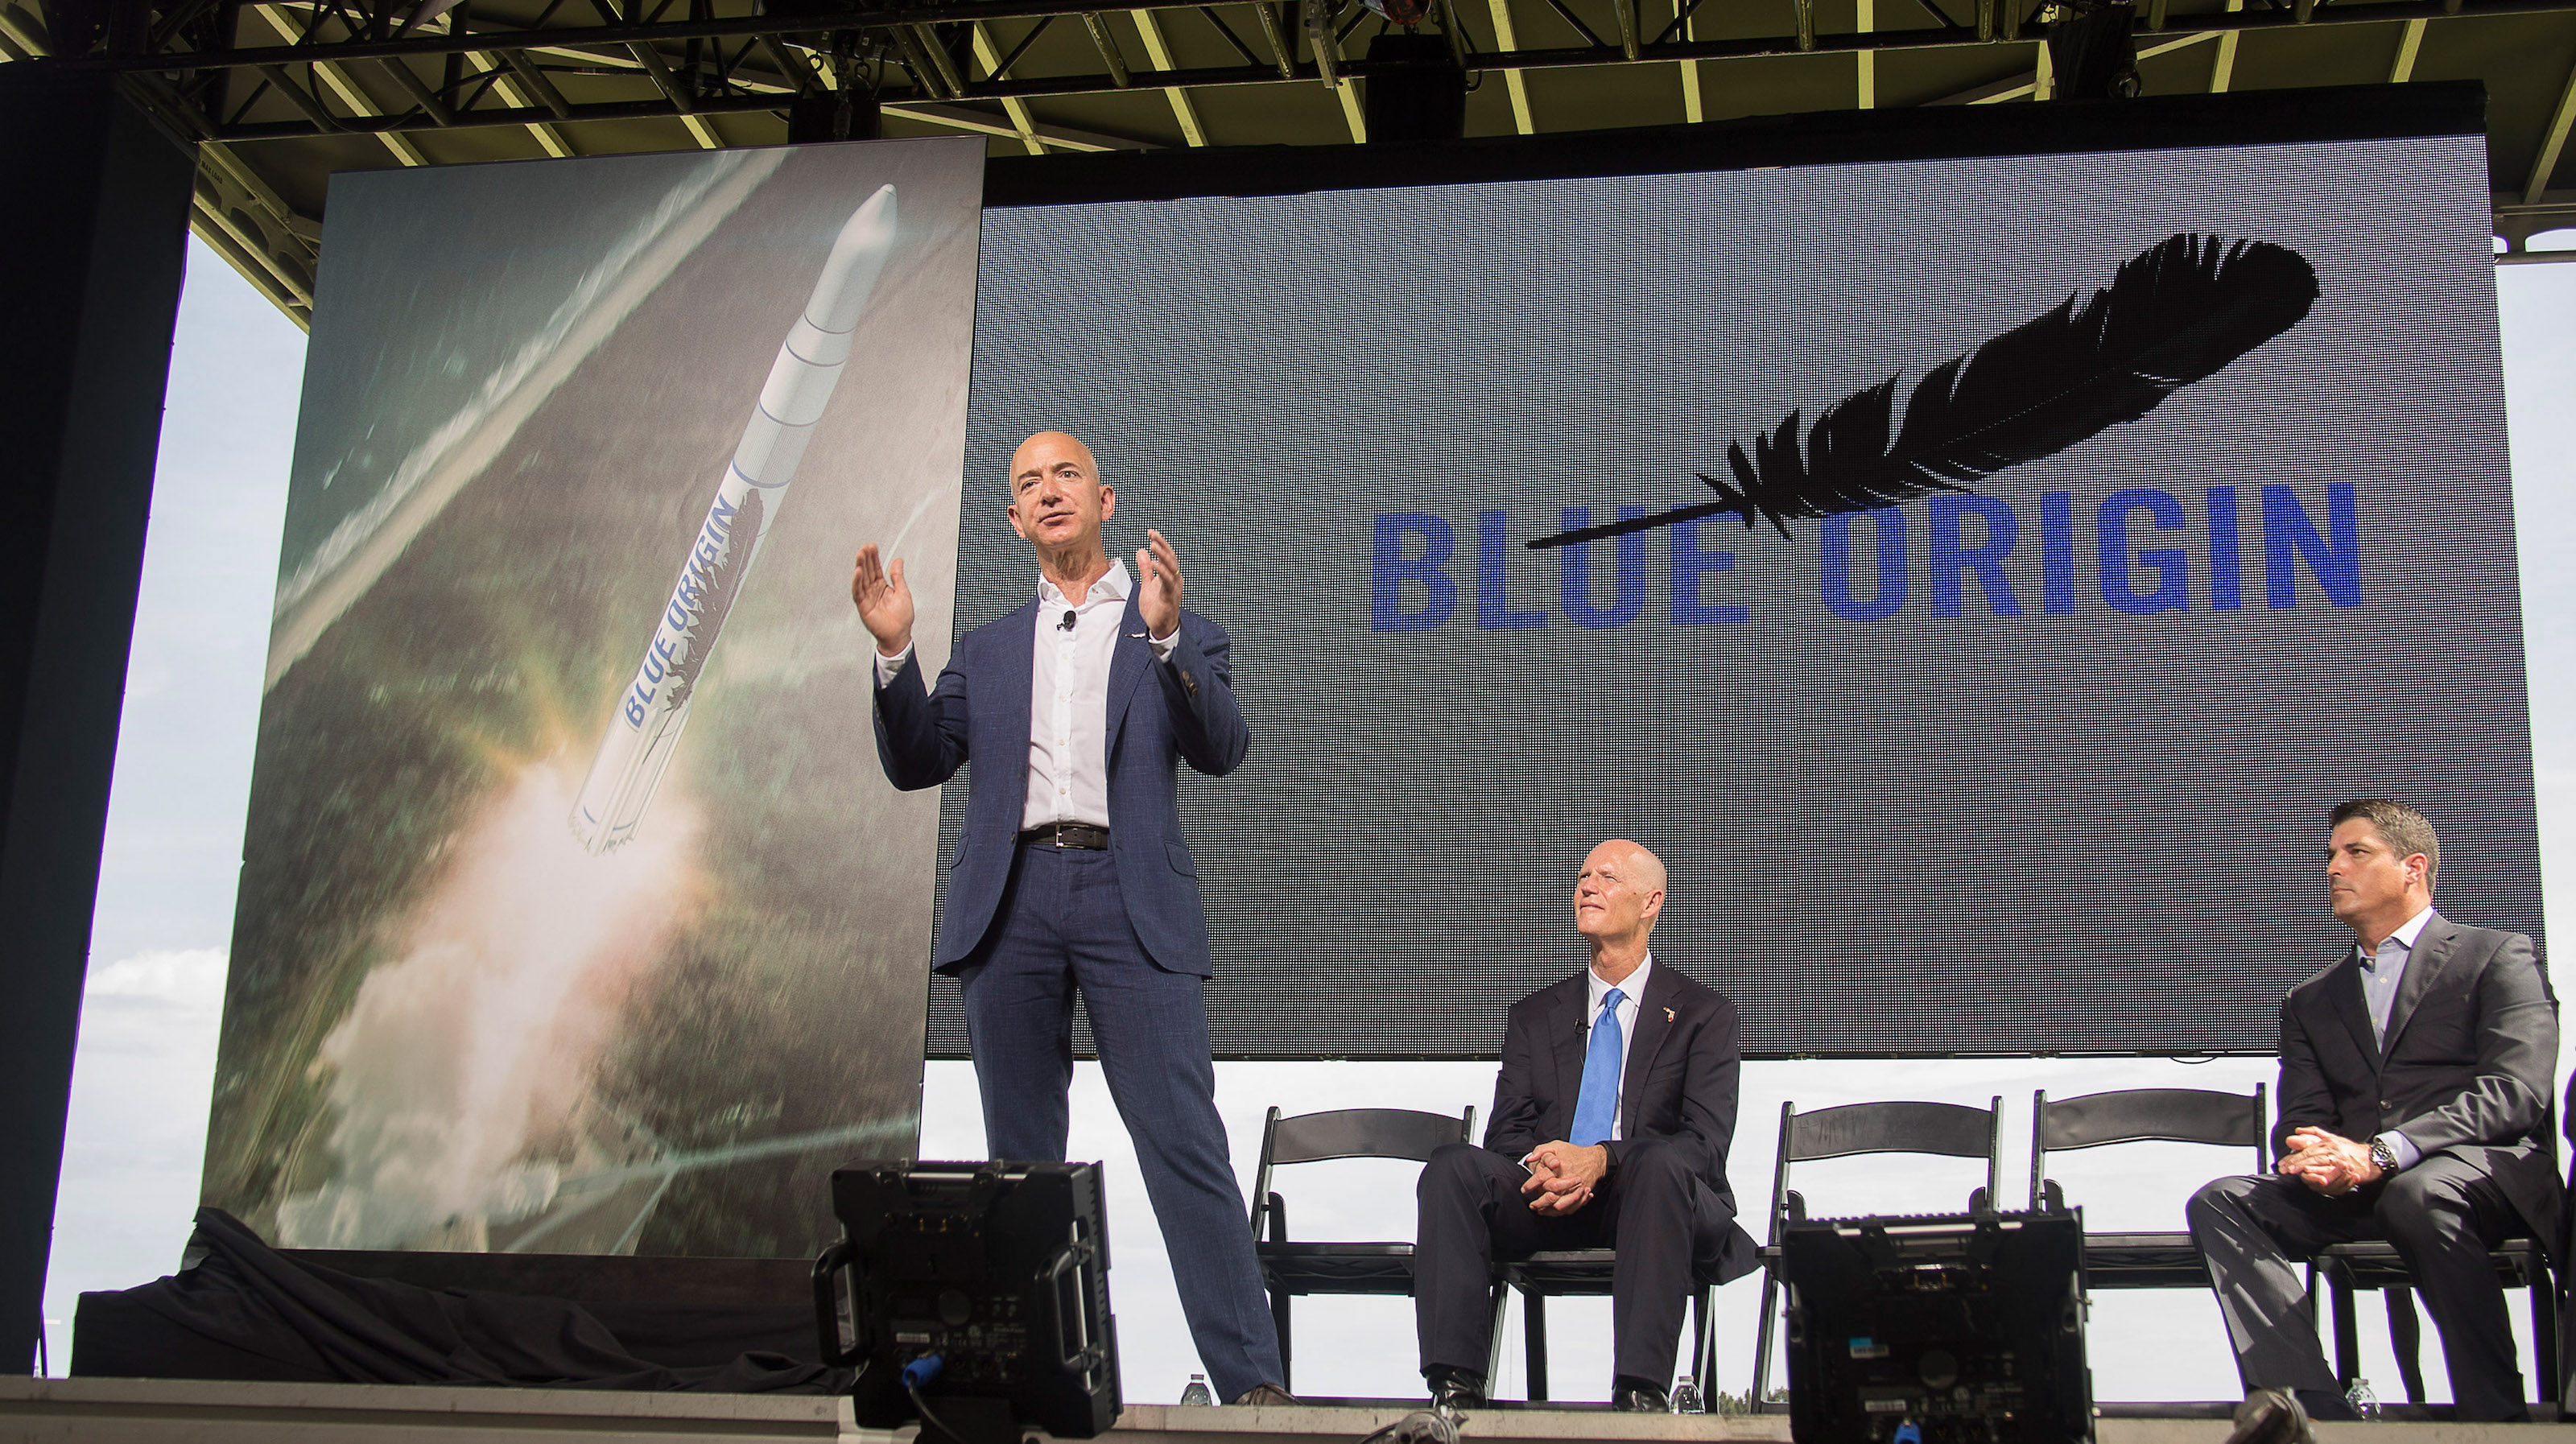 Amazon founder and Blue Origin founder Jeff Bezos (L)announces plans to build a rocket manufacturing plant and launch site at Cape Canaveral Air Force Station, Florida September 15, 2015. Governor Rick Scott and Steve Crisafulli, Speaker of the Florida House of Representatives (R) look on.  HO/Mike Brown/Space Florida THIS IMAGE HAS BEEN SUPPLIED BY A THIRD PARTY. IT IS DISTRIBUTED, EXACTLY AS RECEIVED BY REUTERS, AS A SERVICE TO CLIENTS. FOR EDITORIAL USE ONLY. NOT FOR SALE FOR MARKETING OR ADVERTISING CAMPAIGNS - RTS18ZV